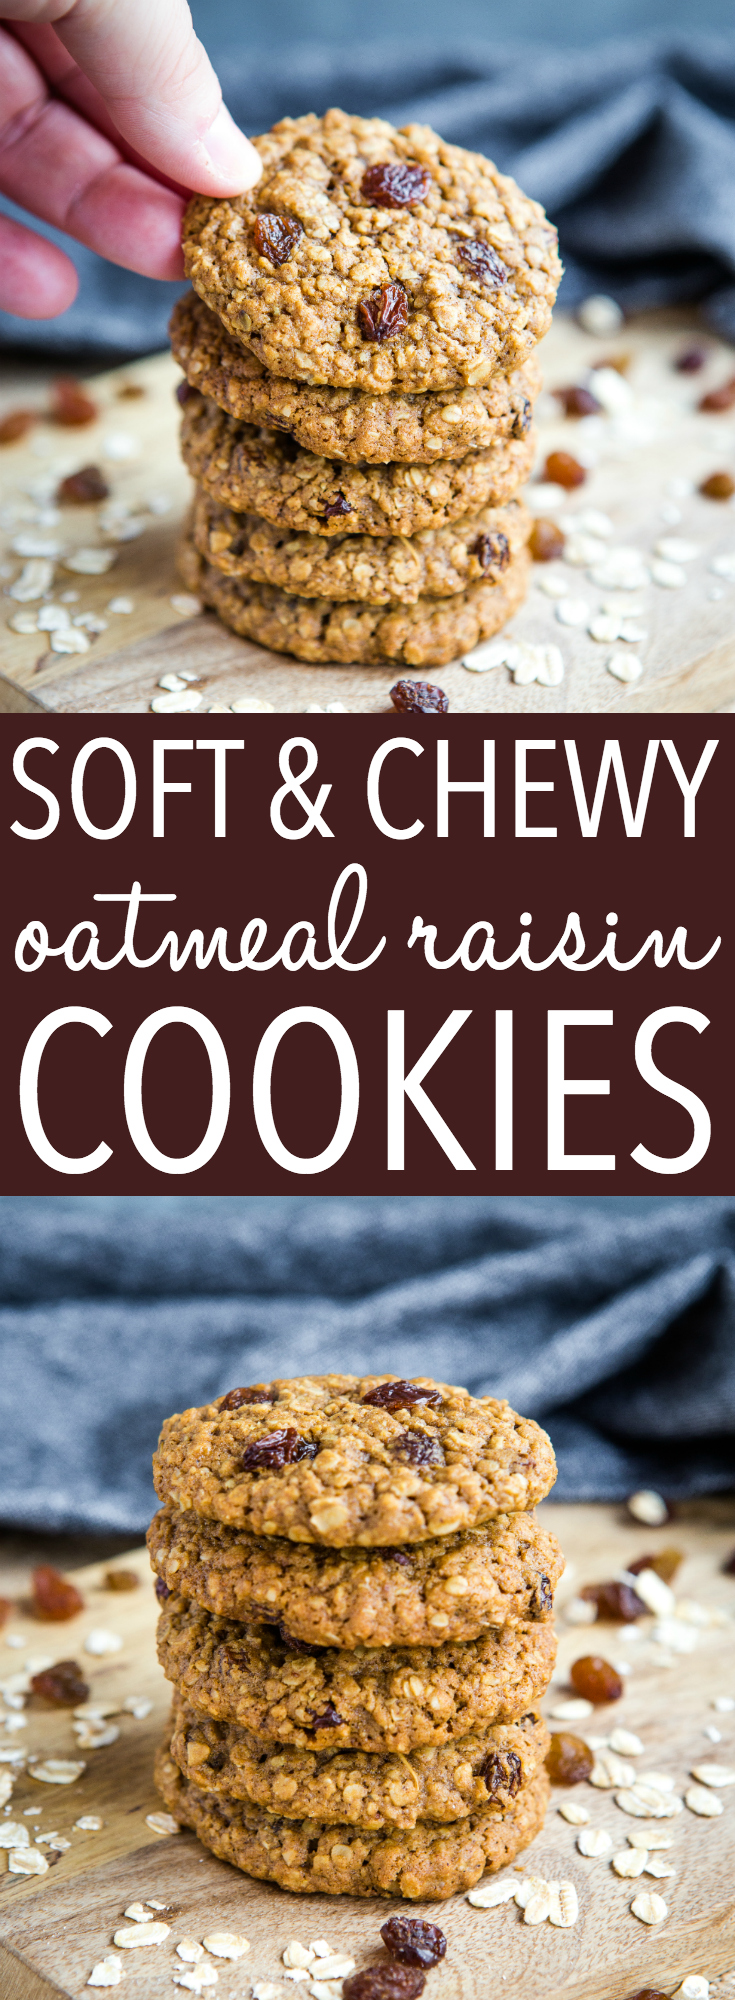 These Soft and Chewy Oatmeal Raisin Cookies are better than grandma's oatmeal cookies - they're sweetened with molasses and made with juicy raisins for an extra chewy cookie! Recipe from thebusybaker.ca! #oatmealcookies #oats #oatmeal #cookies #molasses #sugar #sweet #dessert #baking #homemade #recipe #easyrecipe #raisins via @busybakerblog